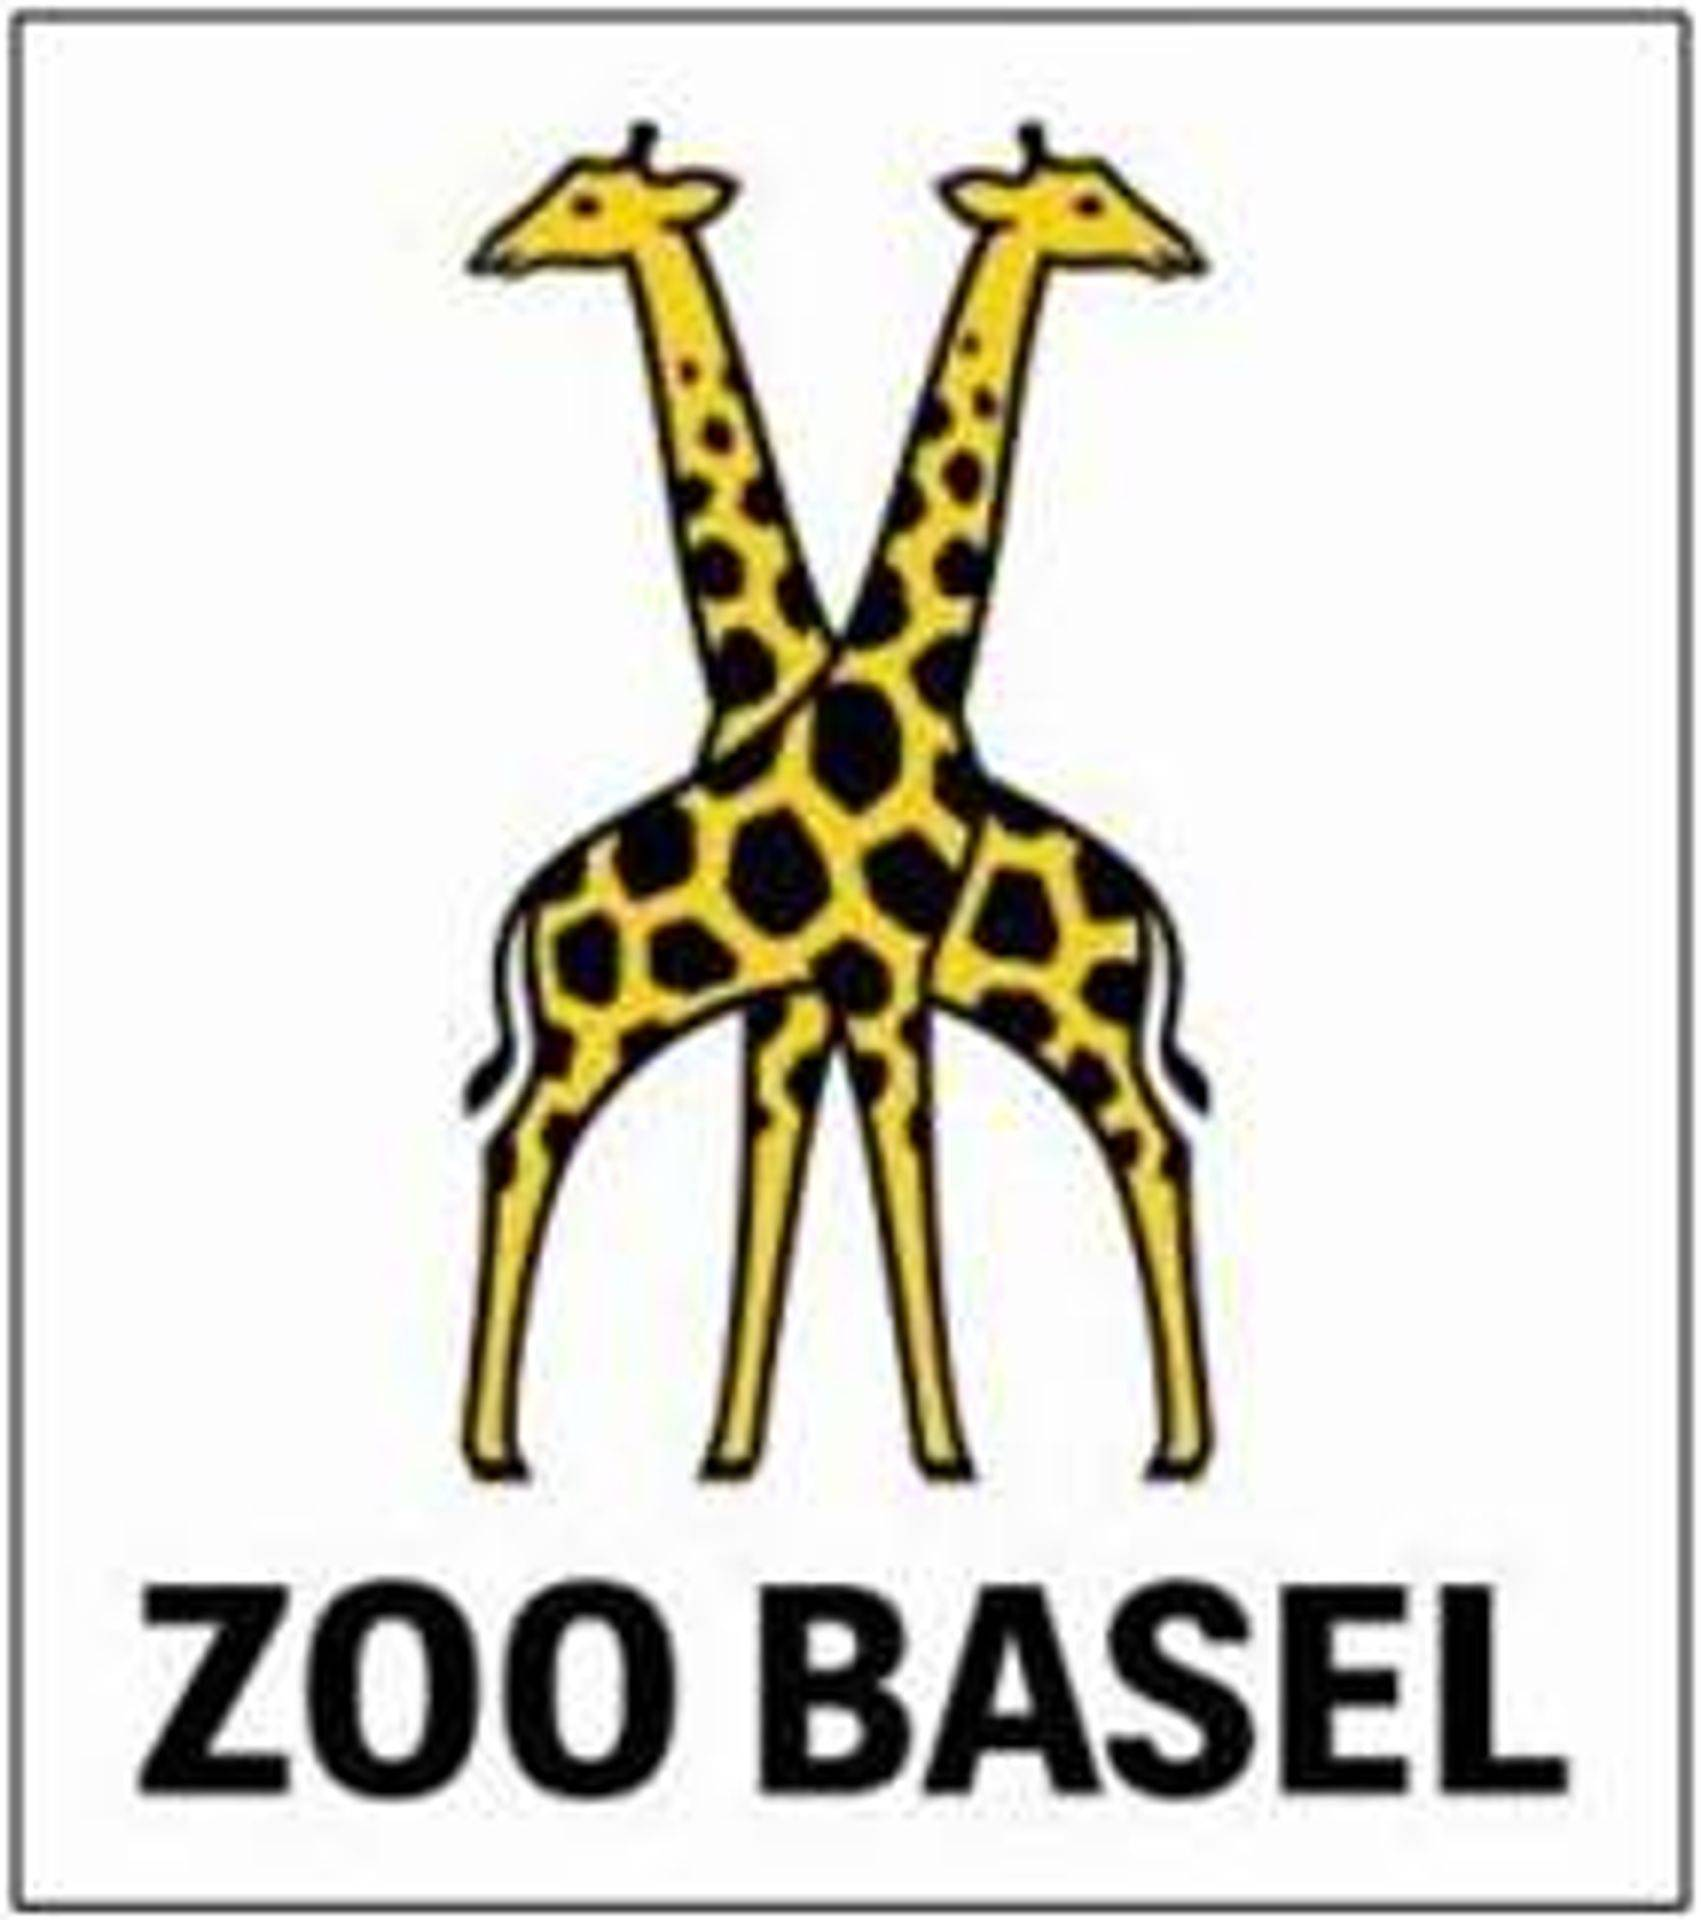 We are very grateful to Basel Zoo, Switzerland, the major donor for our research and sensitisation activities on pygmy hippos.